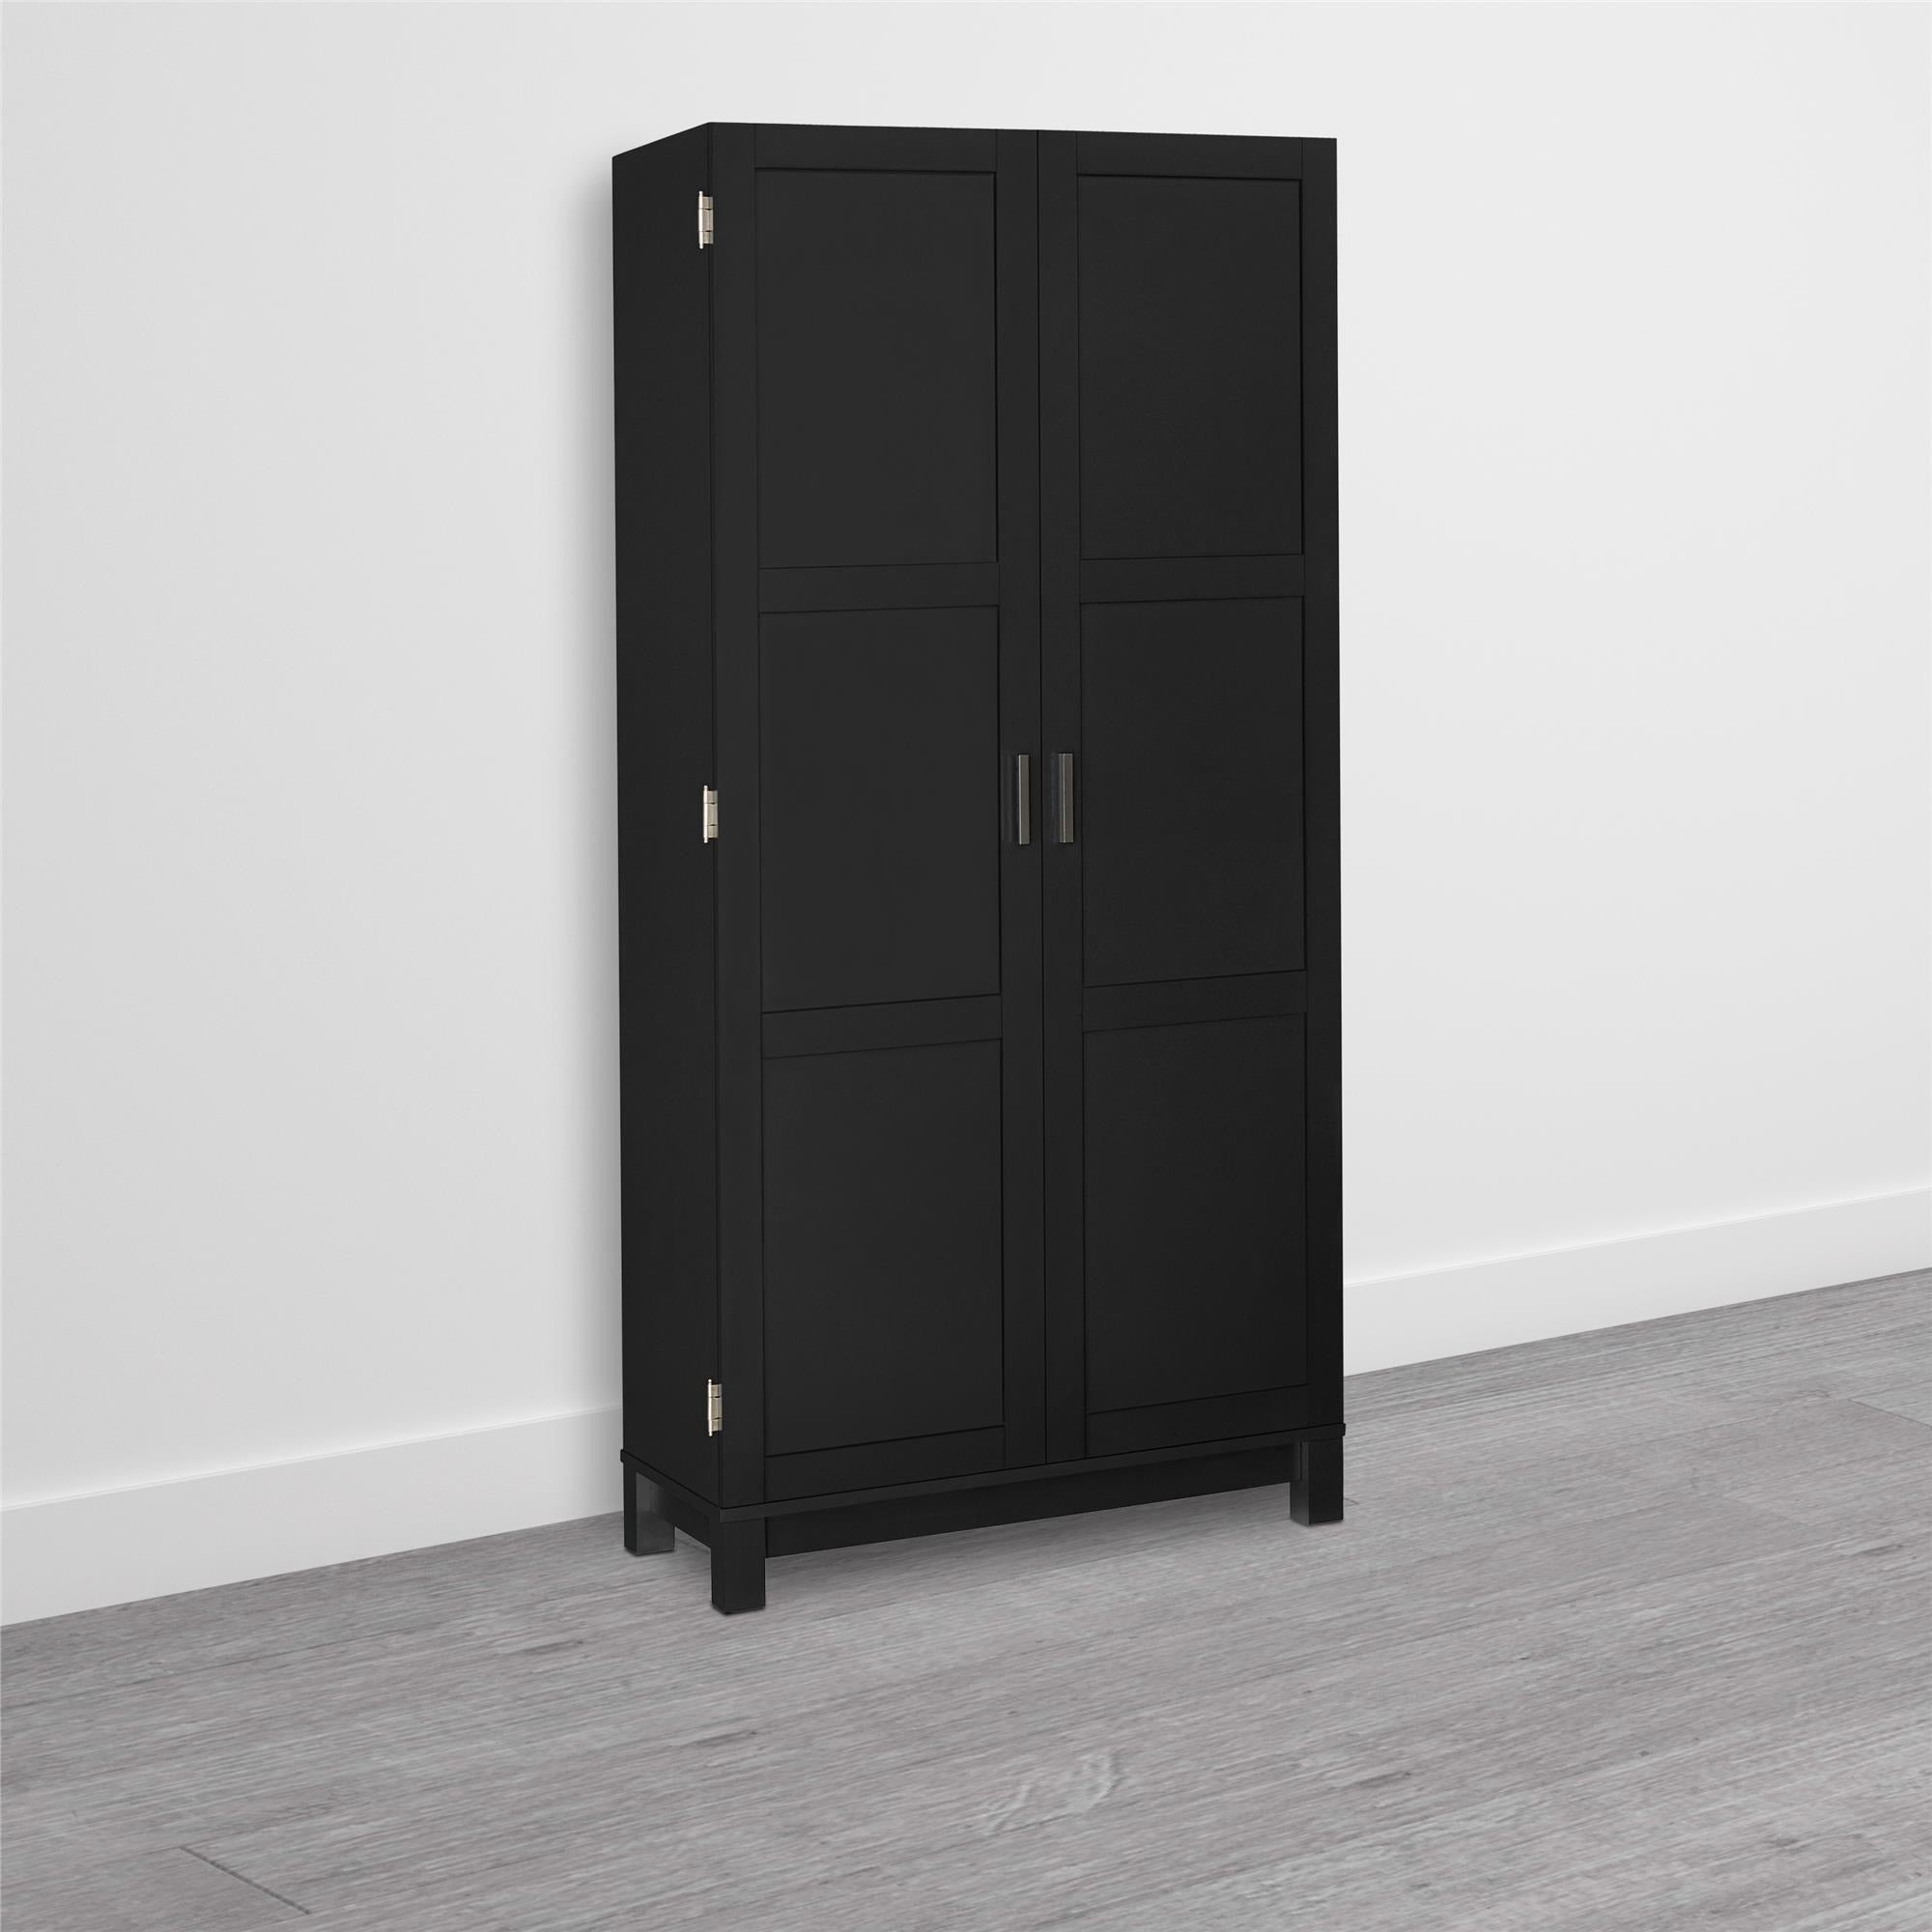 Shop avenue greene commerce black wood 64 inch storage cabinet free shipping today overstock com 20186981